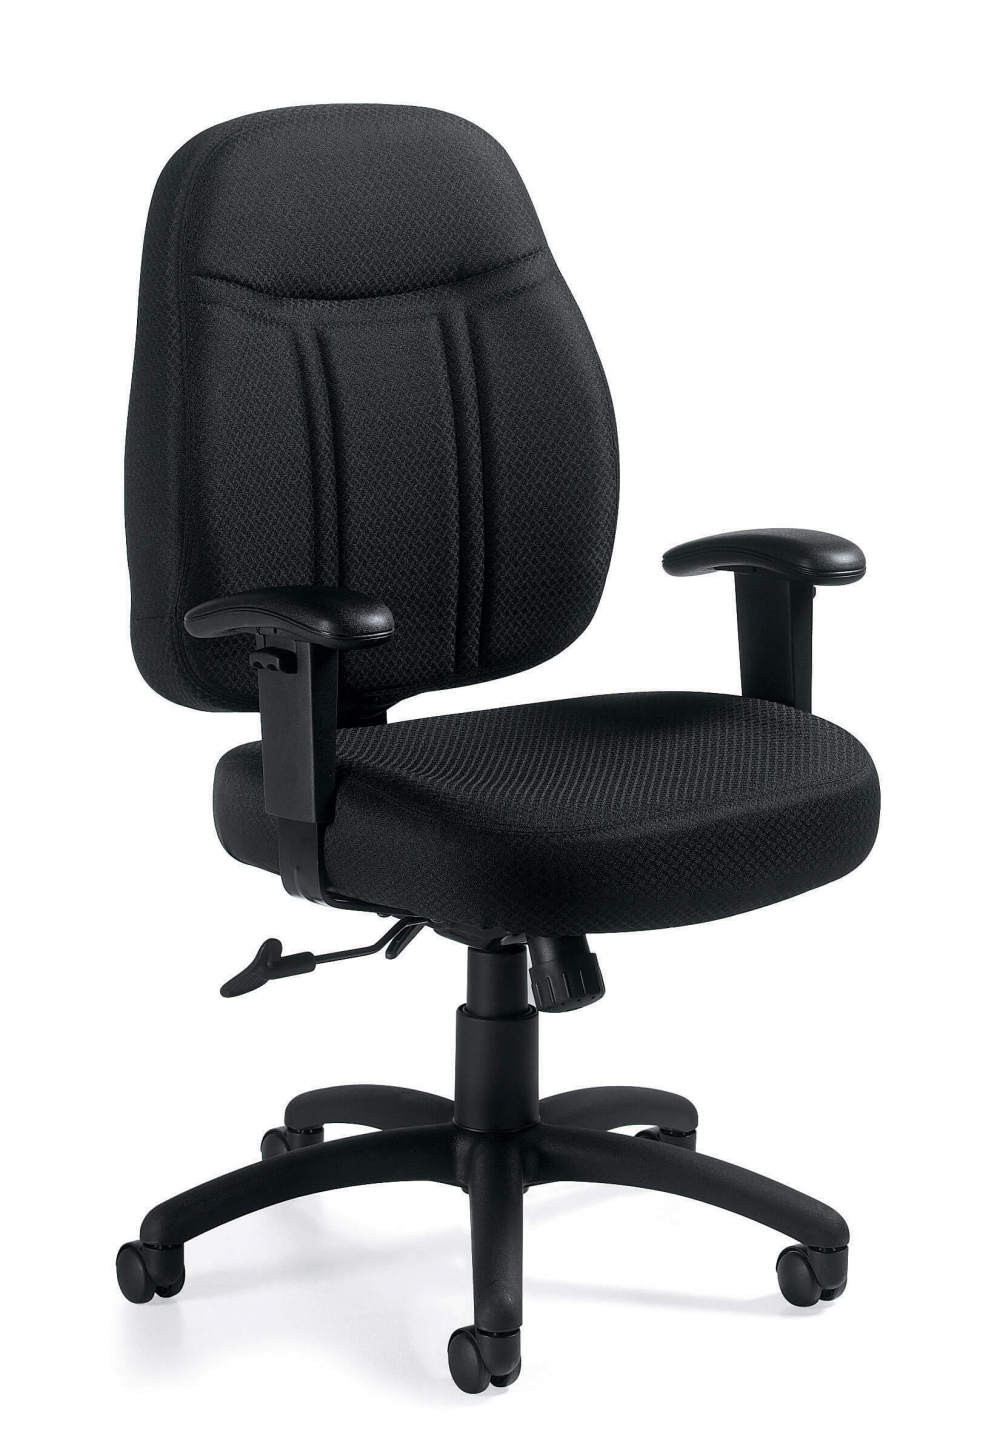 office-furniture-chairs-business-chairs.jpg